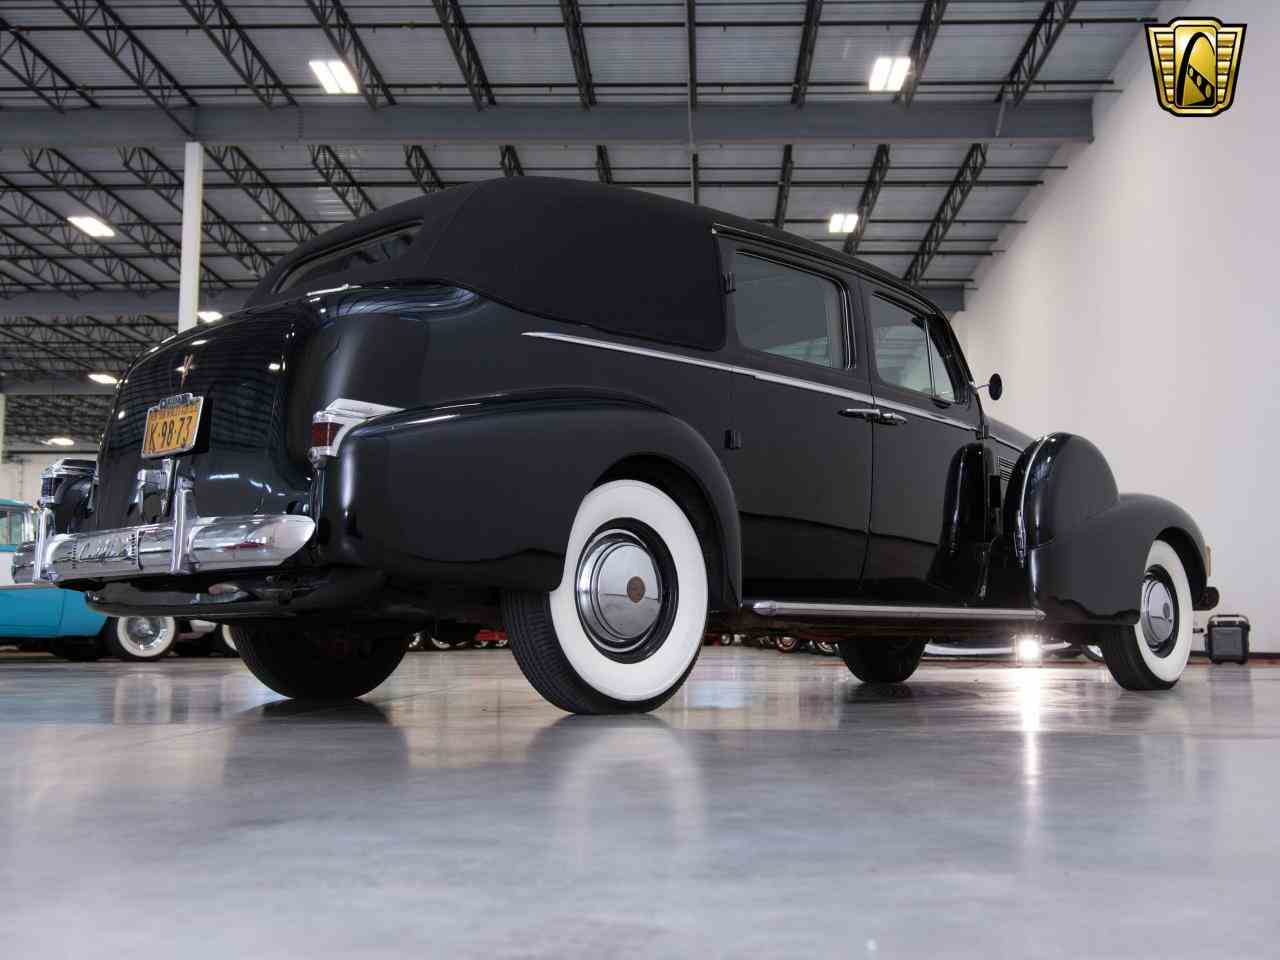 Large Picture of Classic 1939 Cadillac 7 Passenger Touring W/ Trunk - $58,000.00 - KHP0